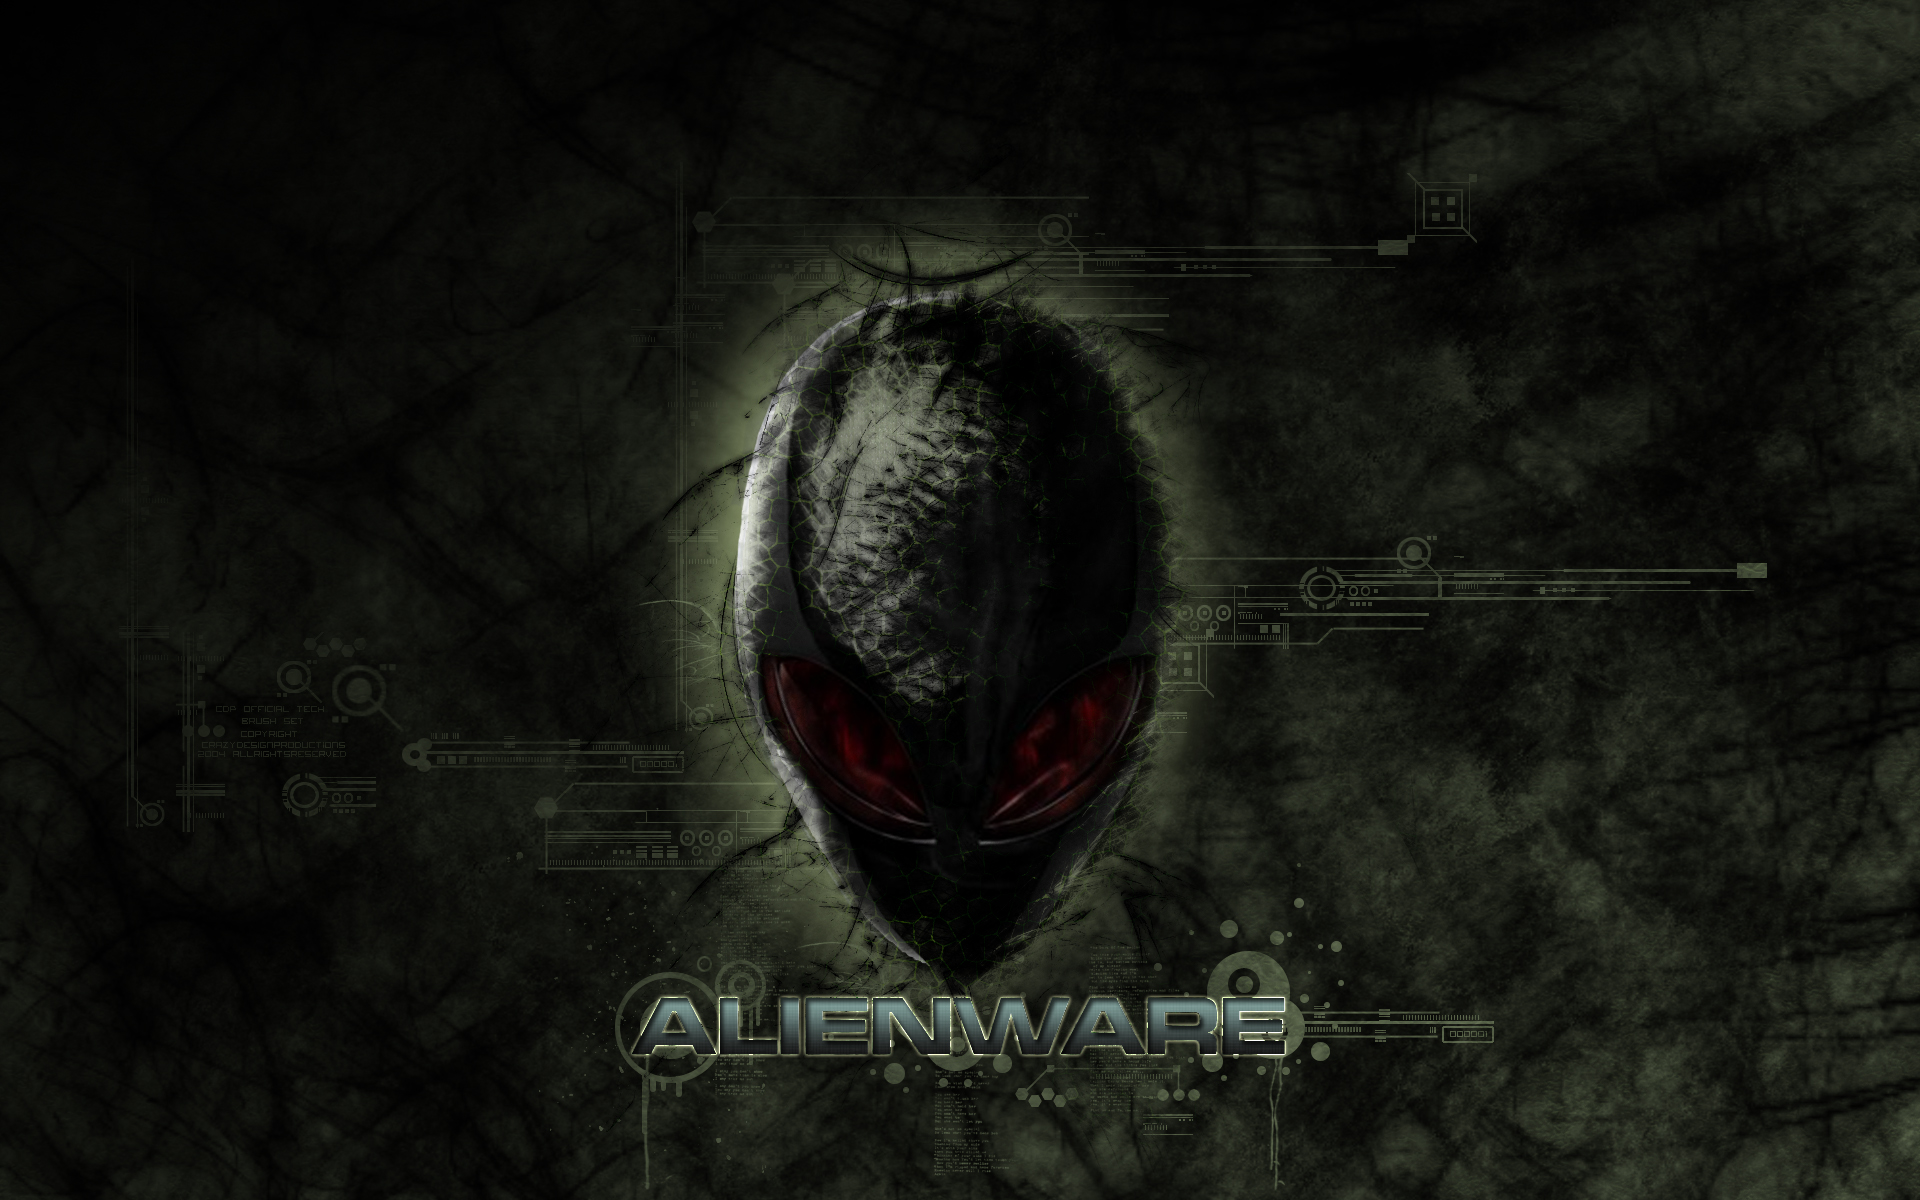 Alienware Wallpaper by hod-master